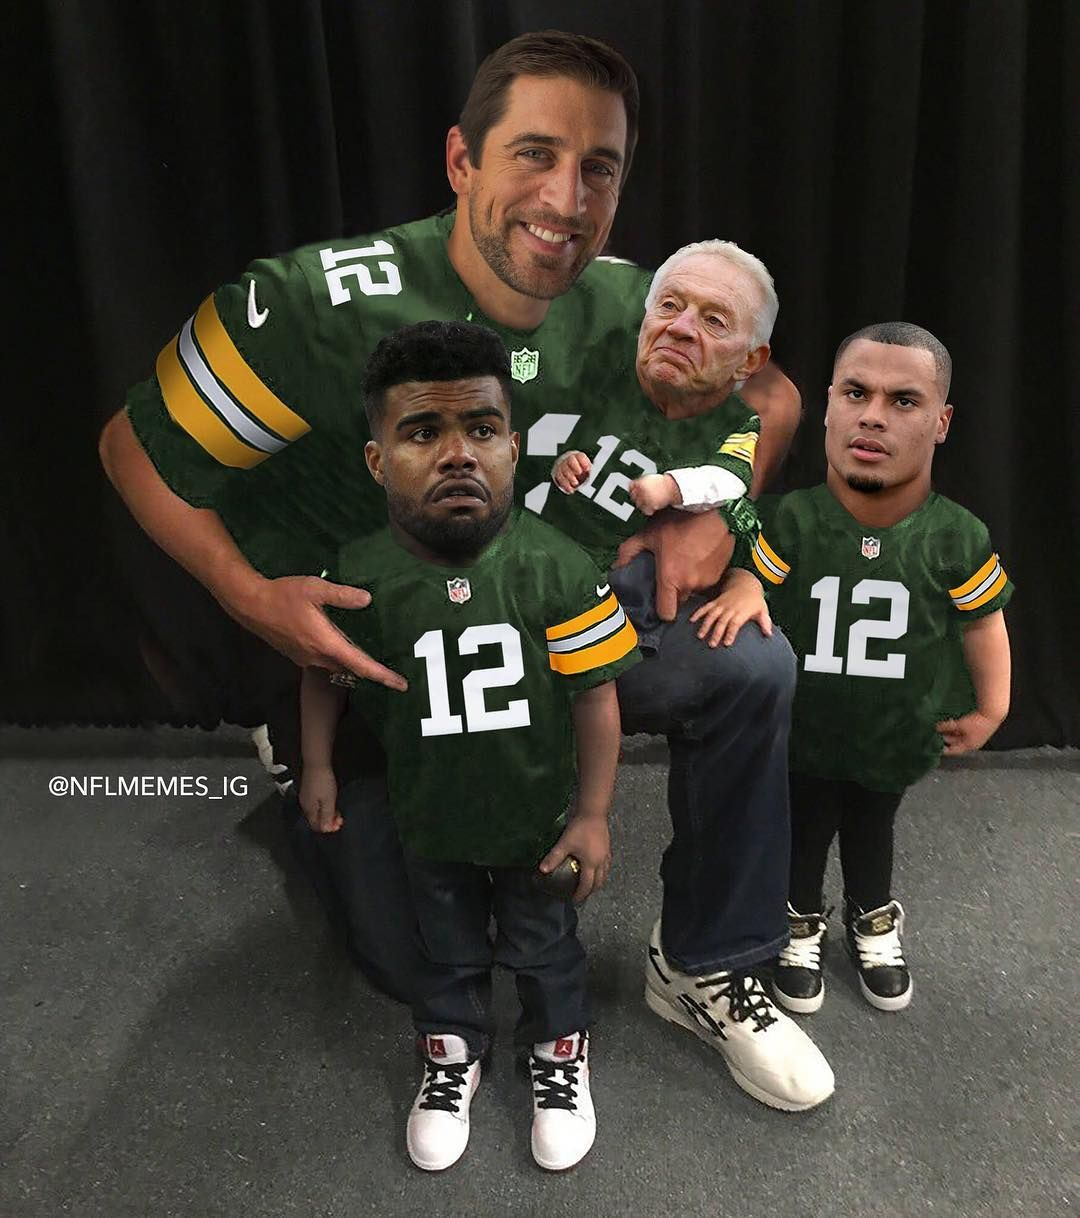 Aaron Rodgers Taking The Kids To School Nfl Memes Dallas Cowboys Memes Cowboys Memes